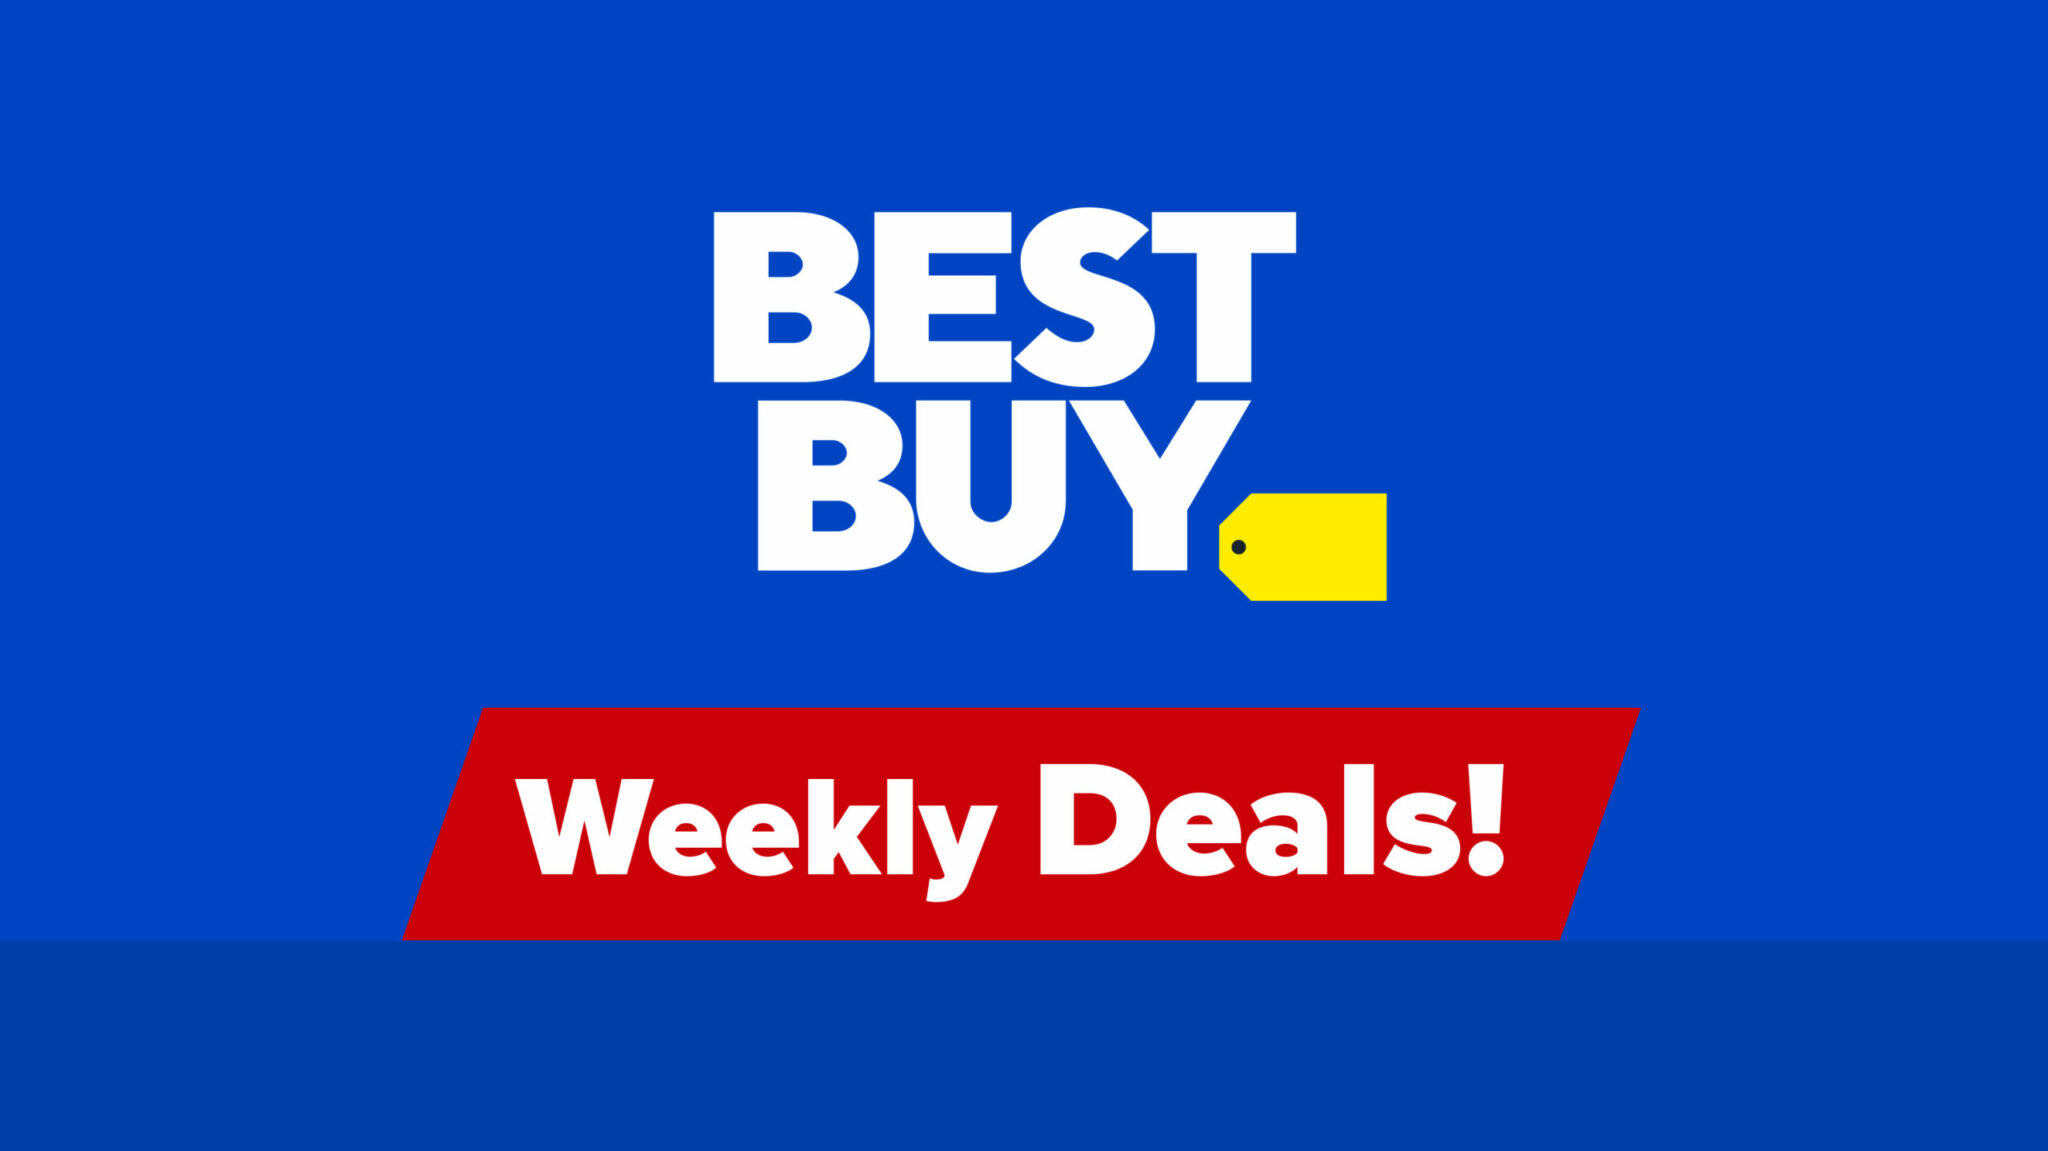 Best Buy's latest sale includes 55 percent off wireless earbuds and other tech deals